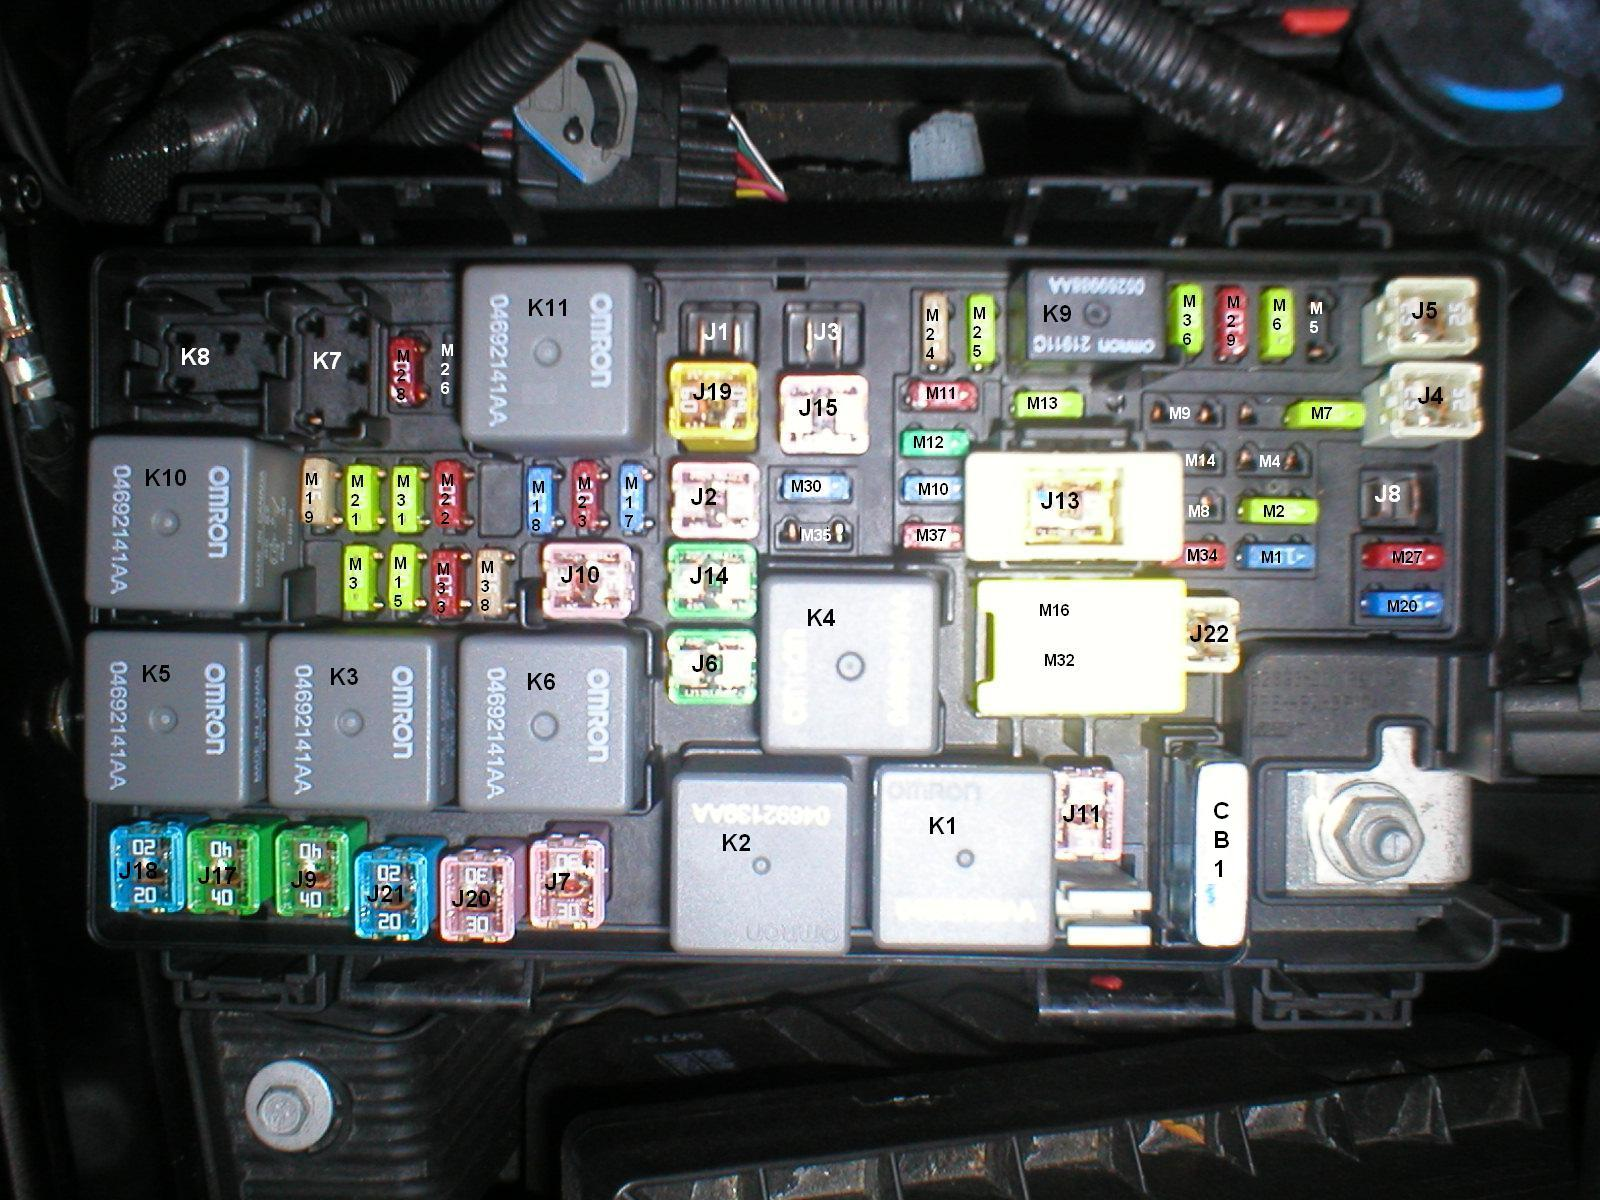 Jeep JK 2009 Fuse Box Map Layout Diagram JKowners Jeep – Jeep Patriot 2008 Fuse Diagram